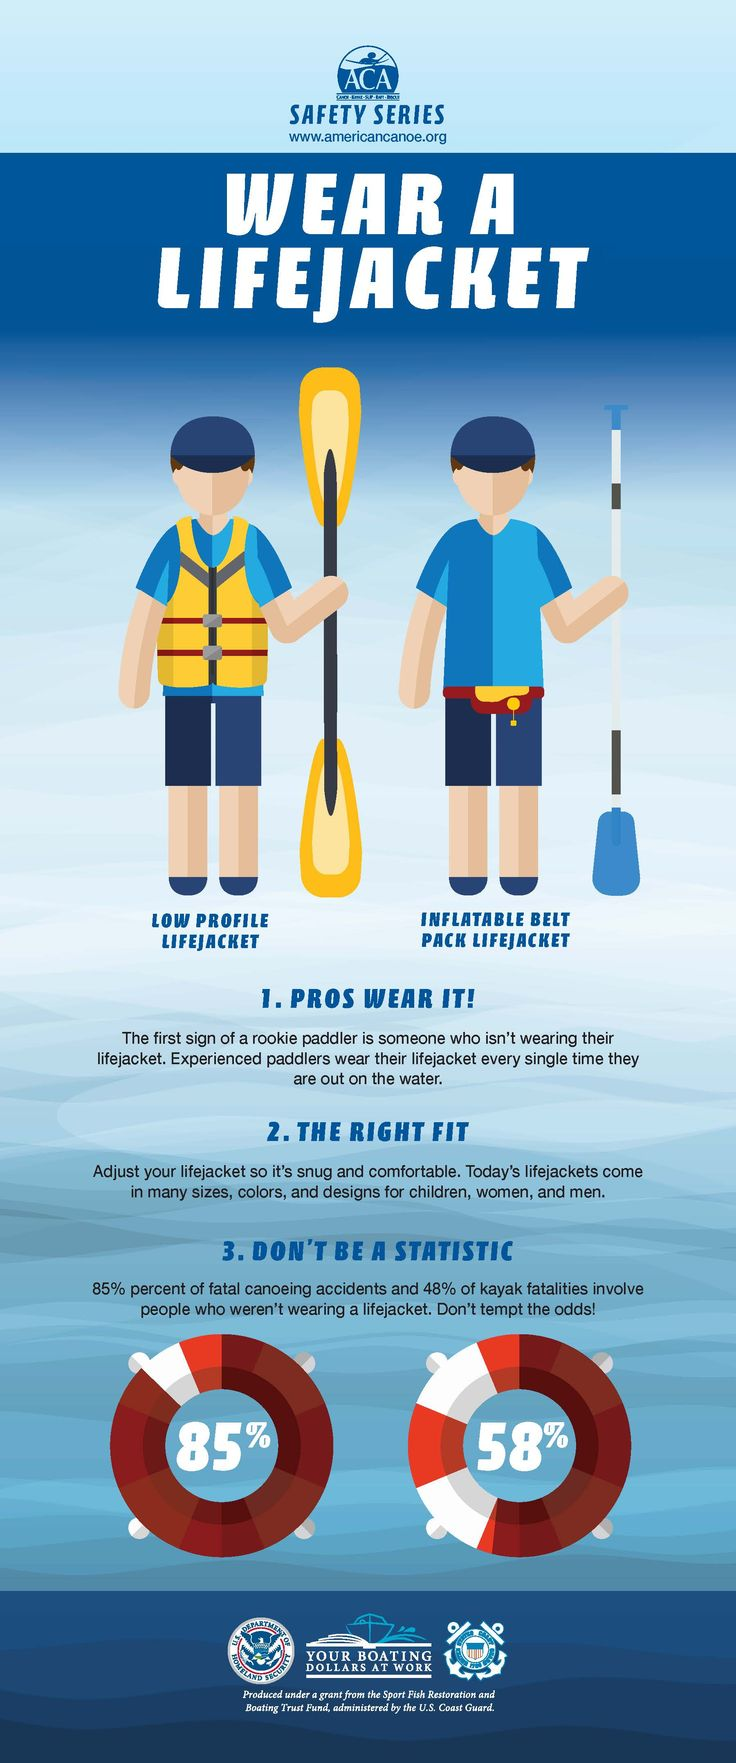 Wear a Lifejacket Safety Tips Infographic by the ACA